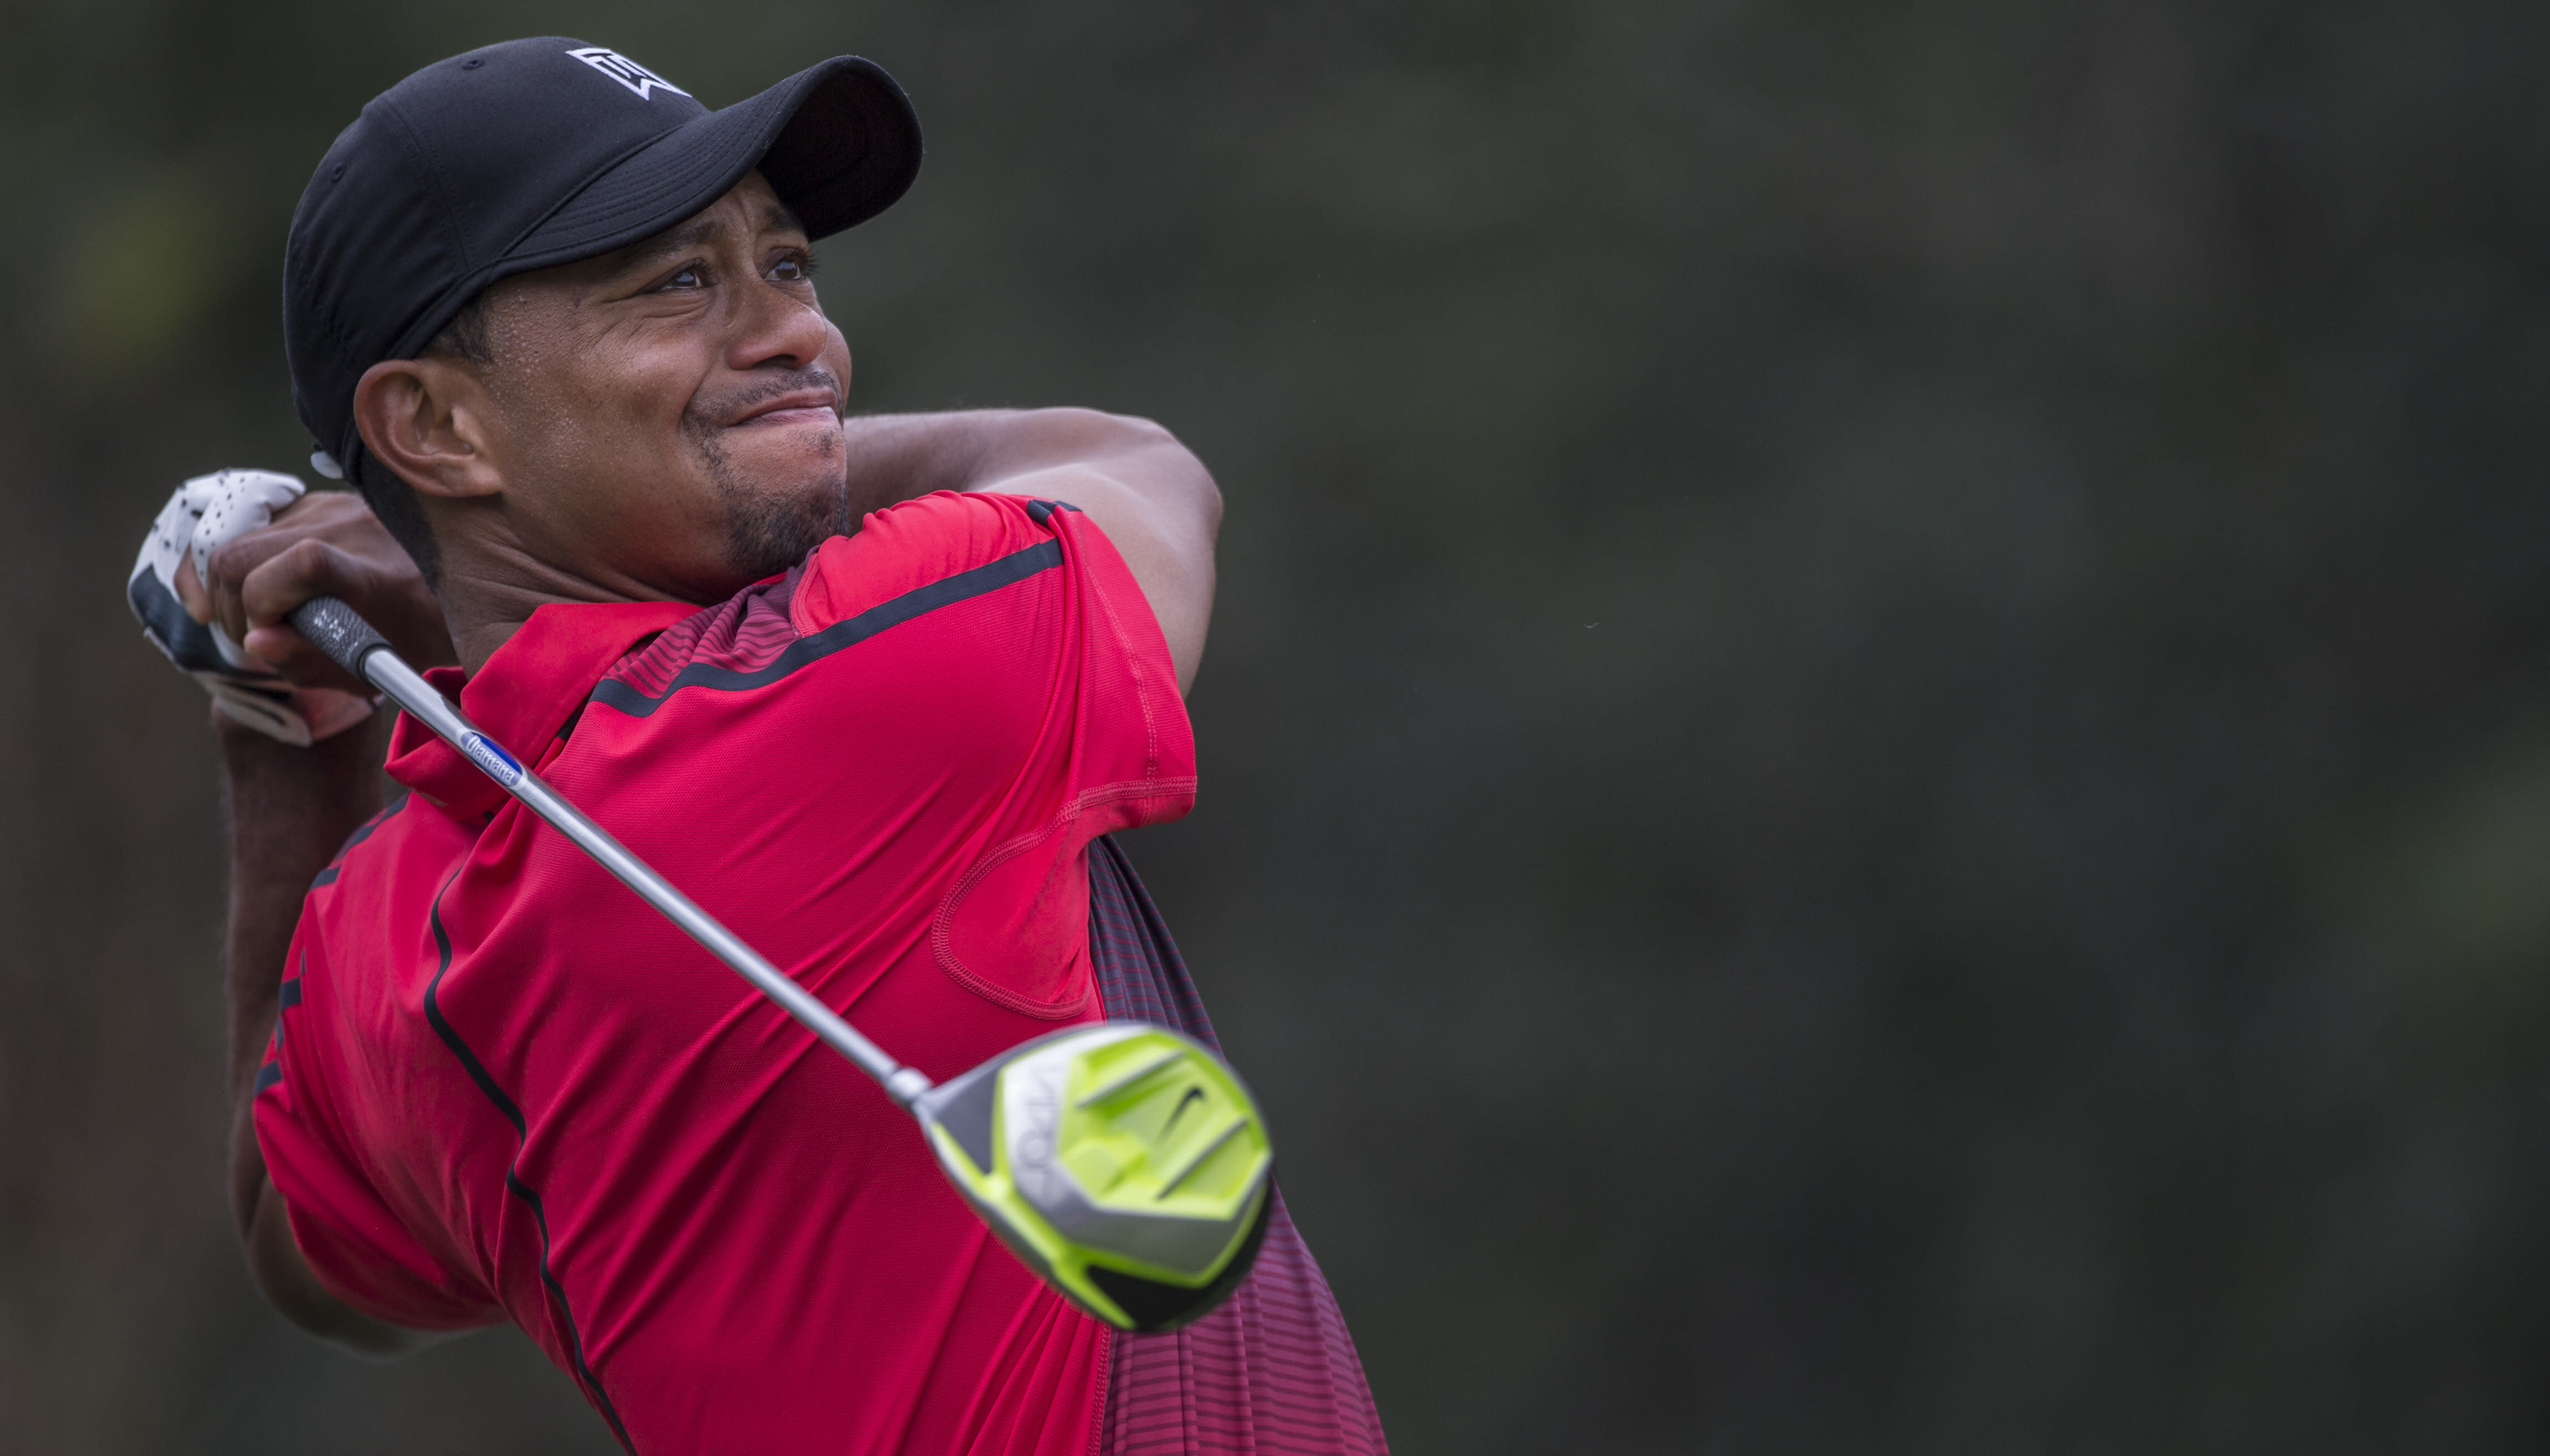 Get a look at Tiger Woods' first opened golf course, El Cardonal